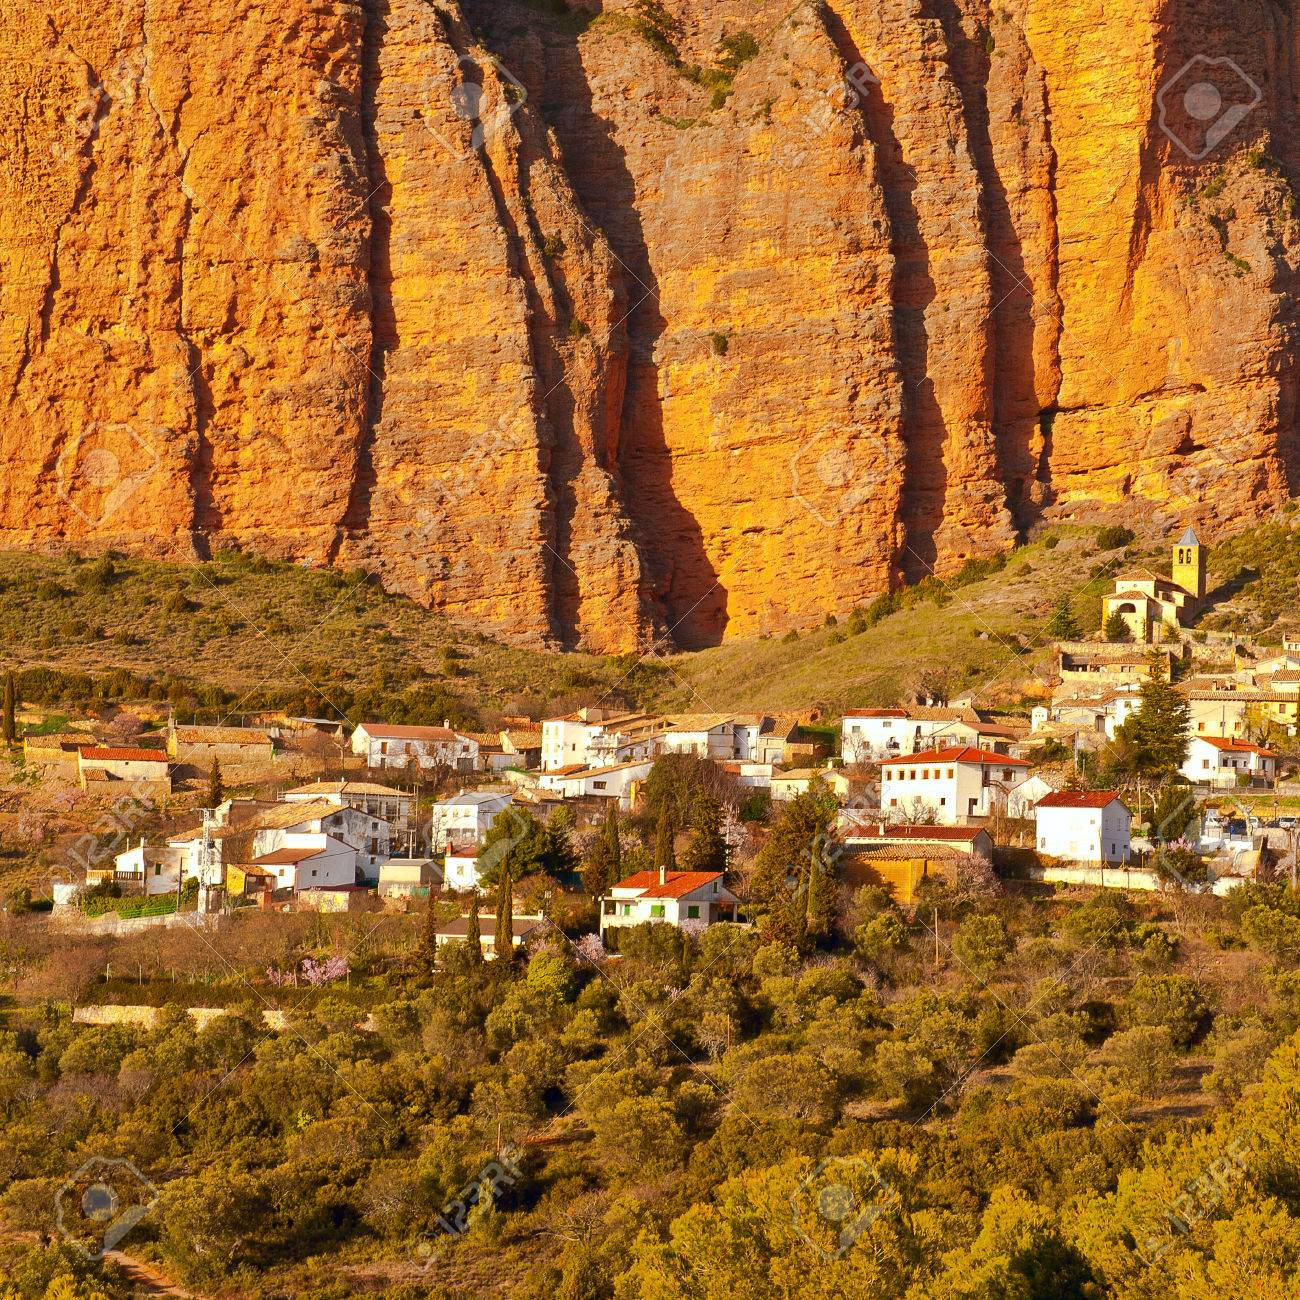 Rocks In Spanish Part - 26: Spanish Medieval Village At The Foot Of The Rocks In The Pyrenees Stock  Photo - 31309092